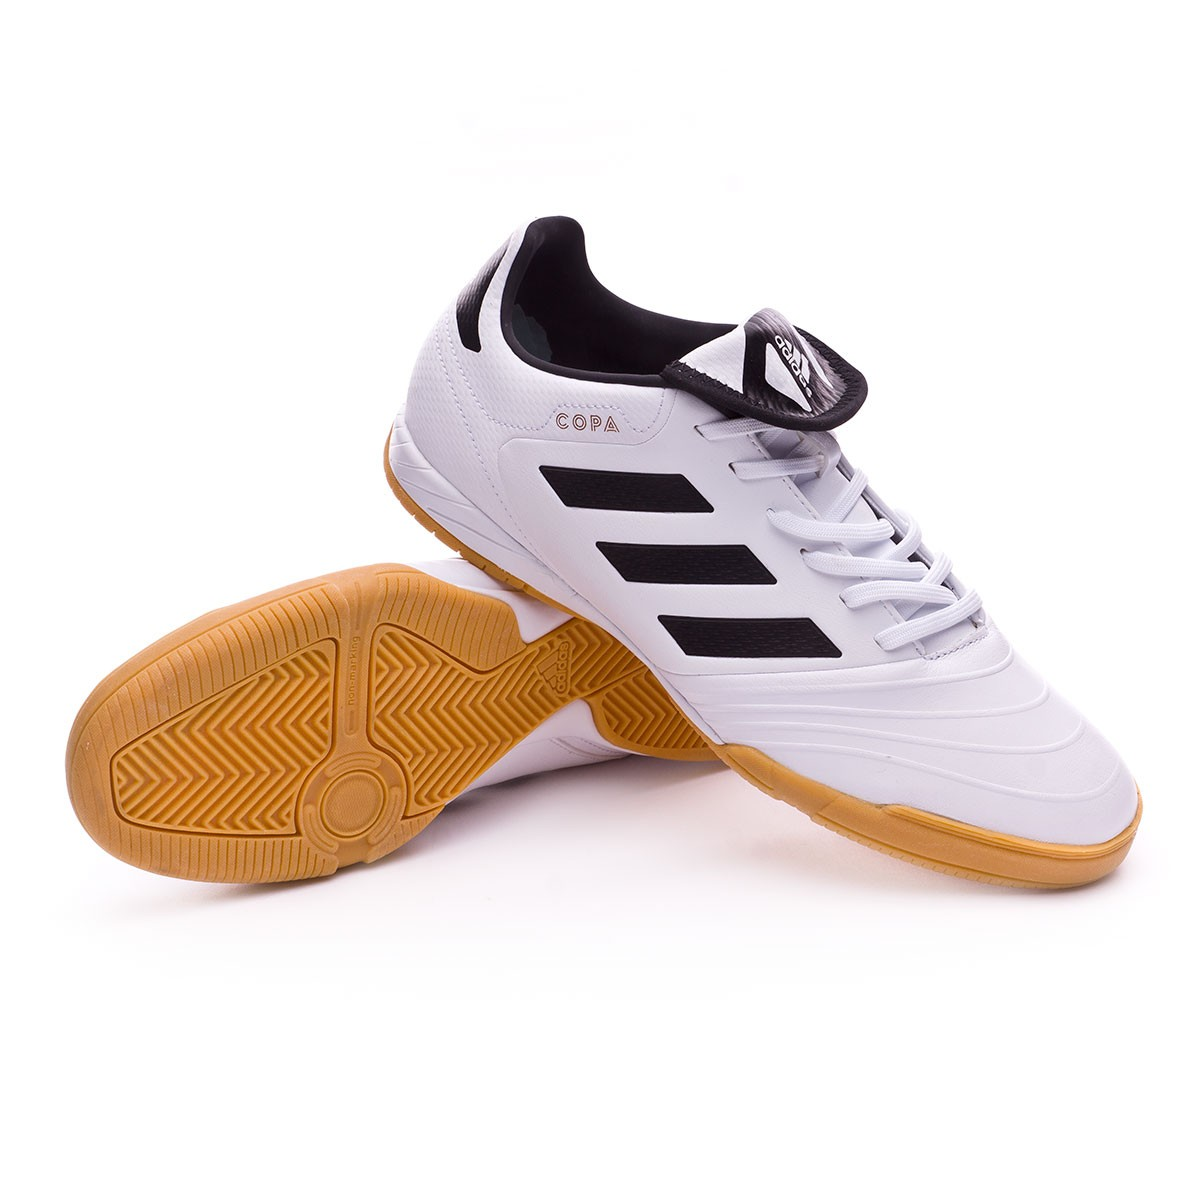 3717be597af Futsal Boot adidas Copa Tango 18.3 IN White-Core black - Football ...